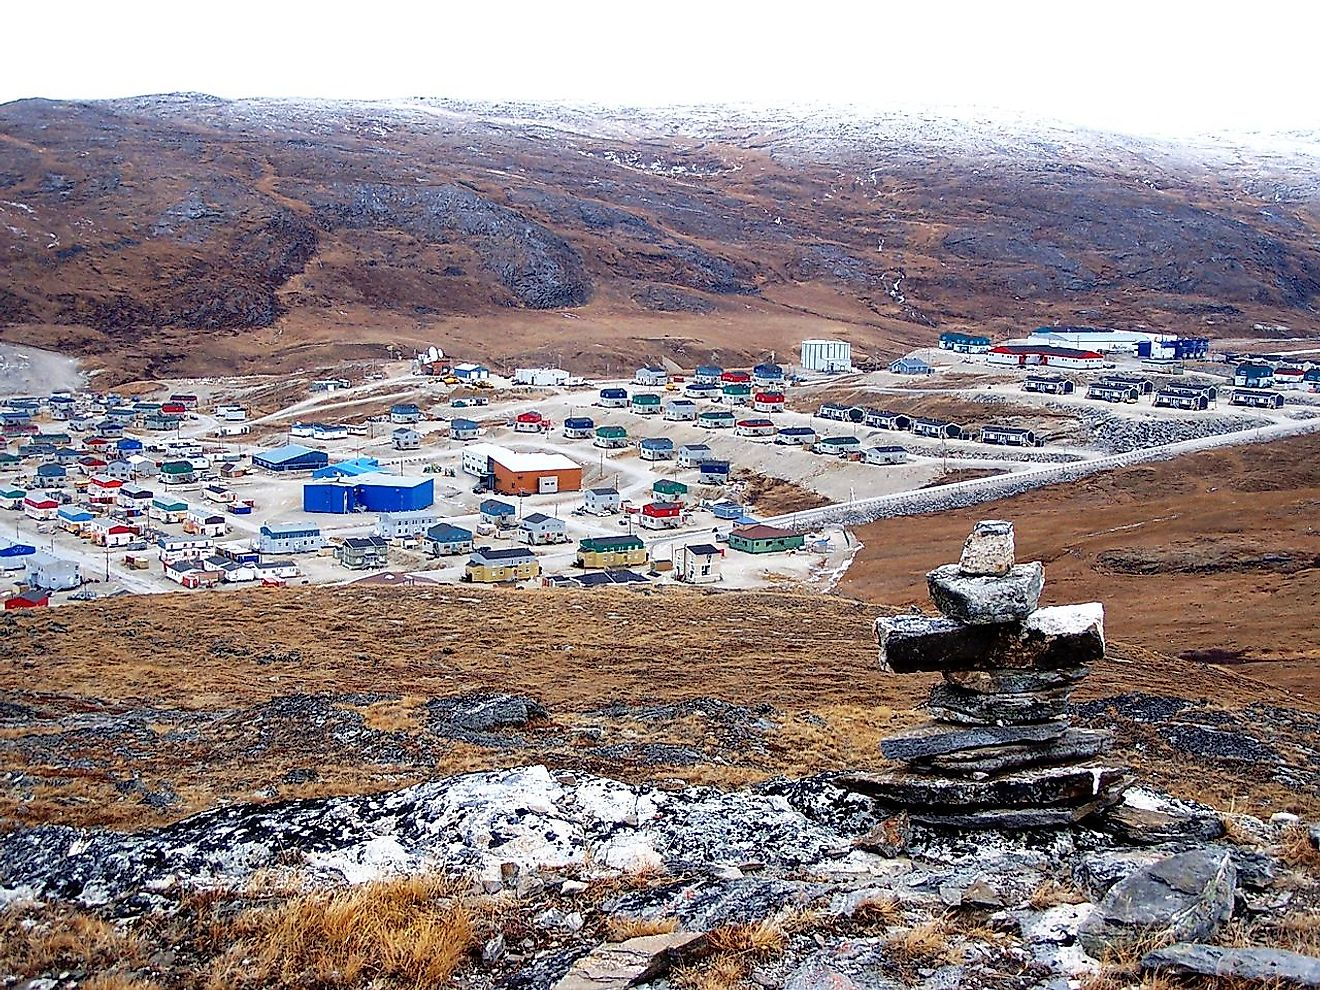 Salluit settlement, the second northernmost Inuit community in Quebec, Canada. Image credit: Louis Carrier/Wikimedia.org